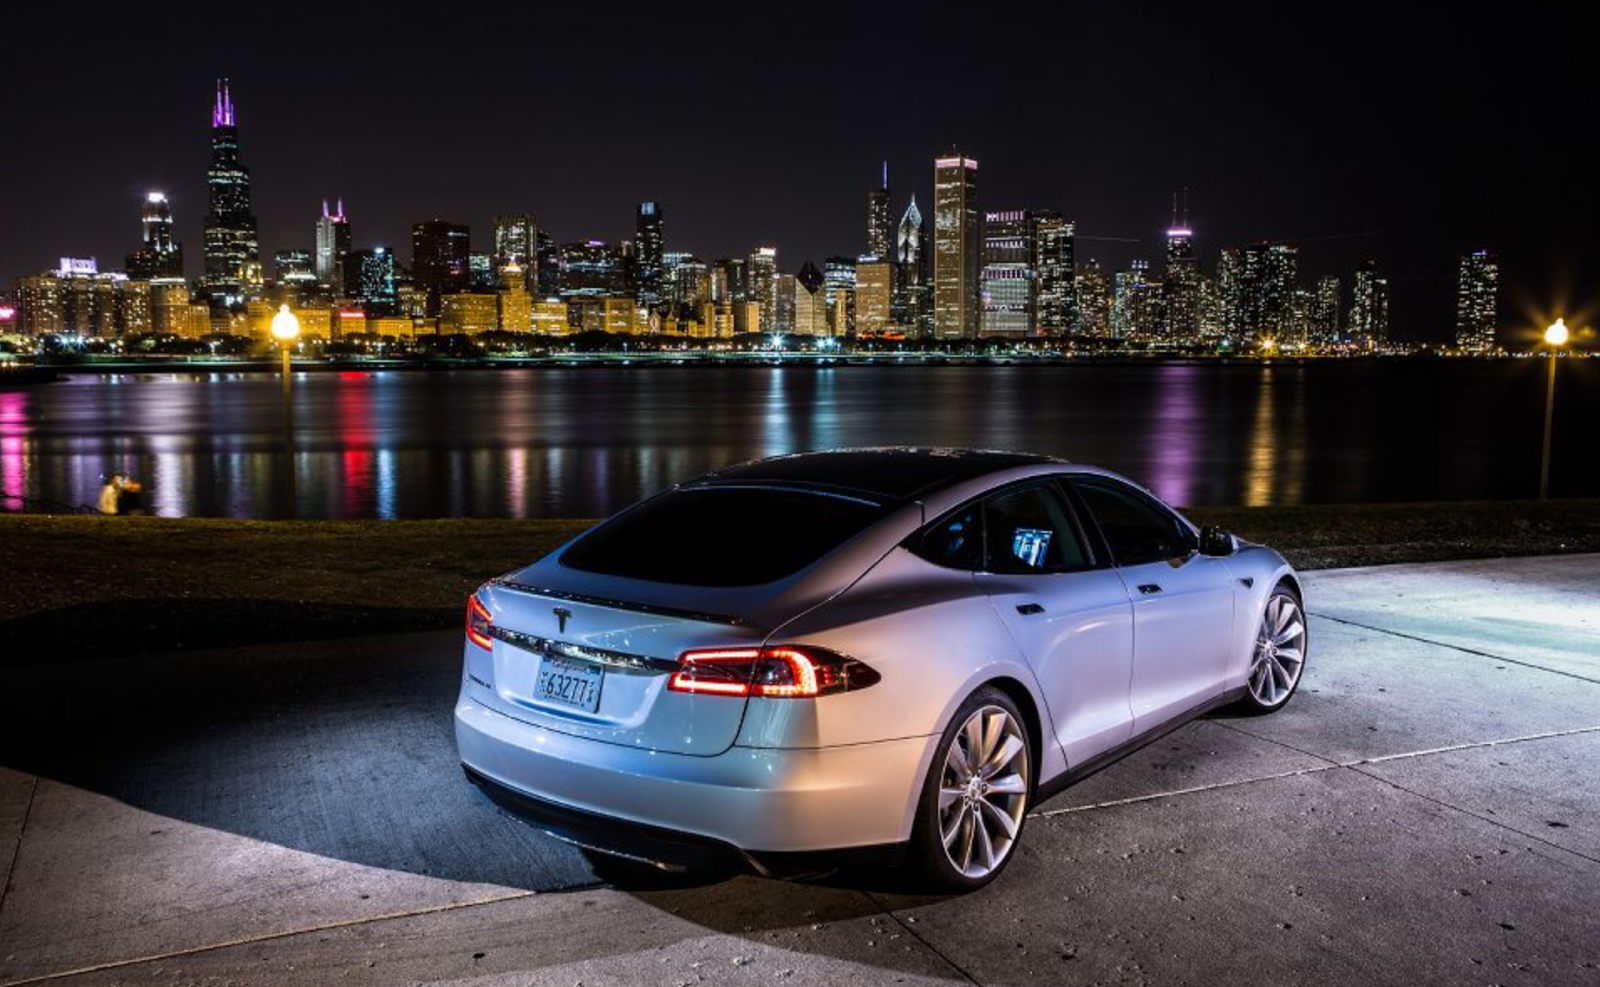 Amazing Backgrounds of Tesla Model S Colelction ID PLAPLA